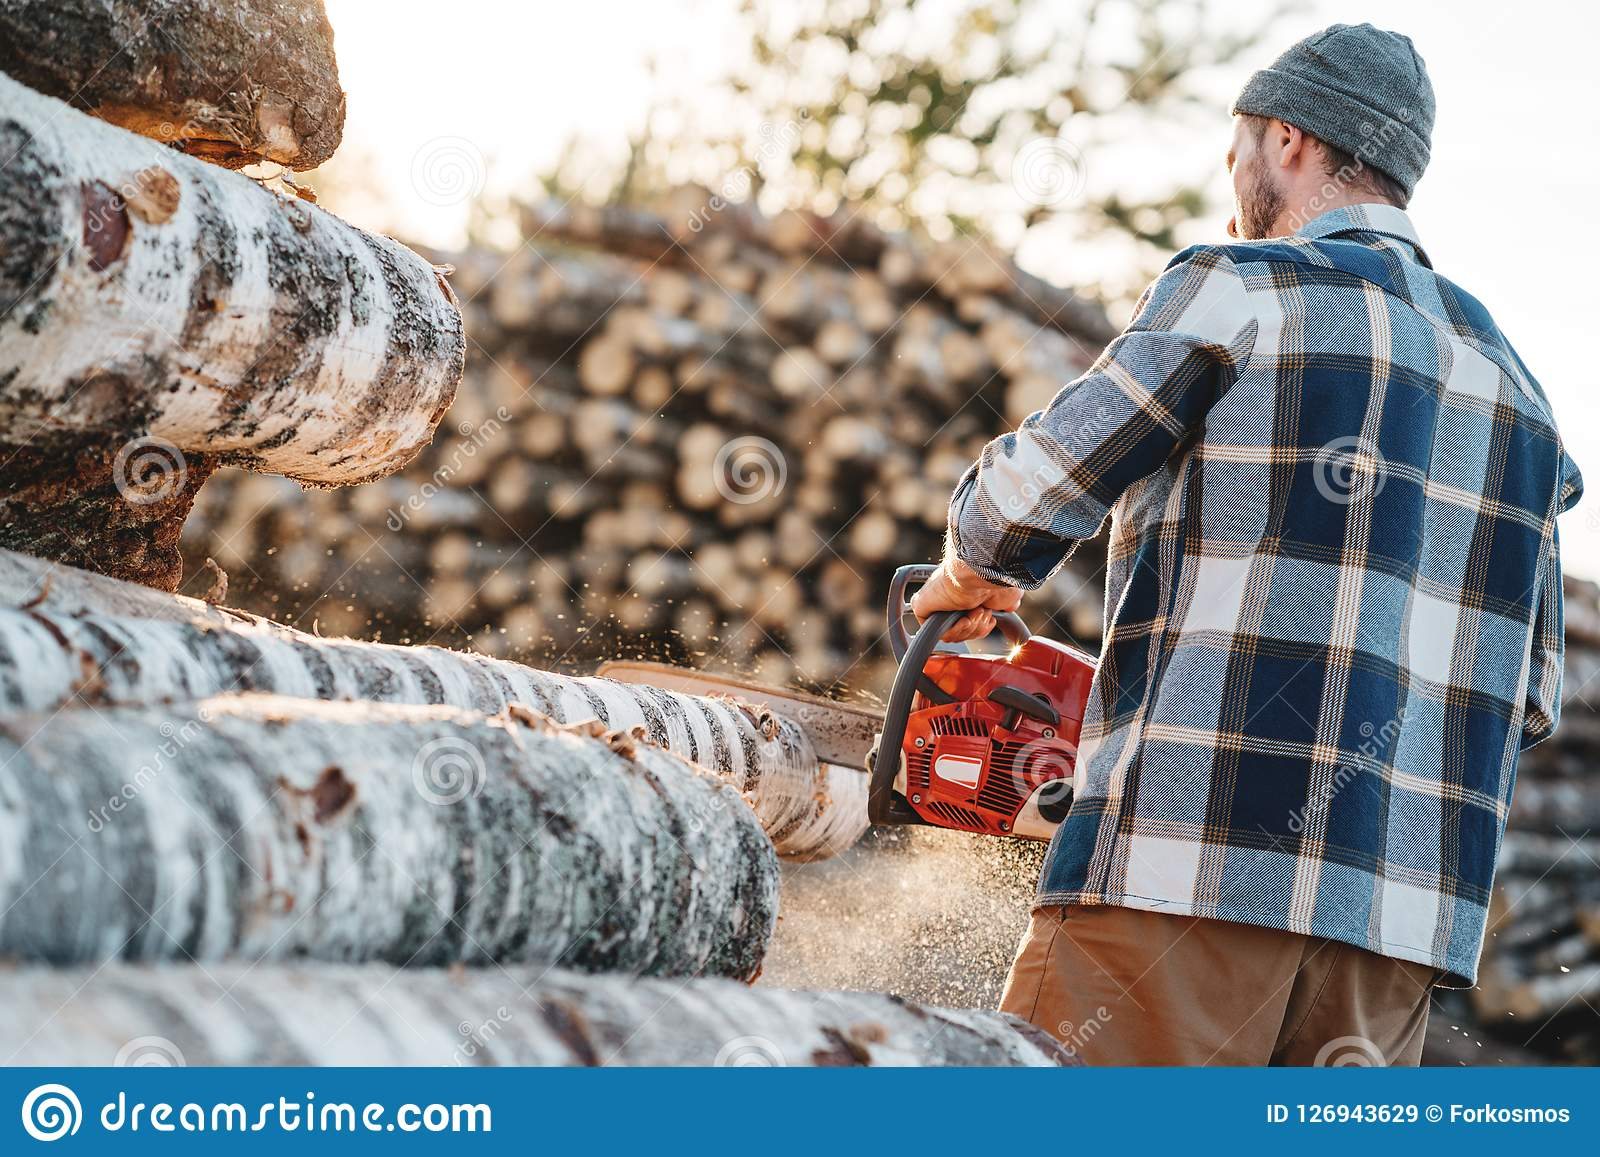 Professional strong lumberman wearing plaid shirt sawing tree with chainsaw for work on sawmill